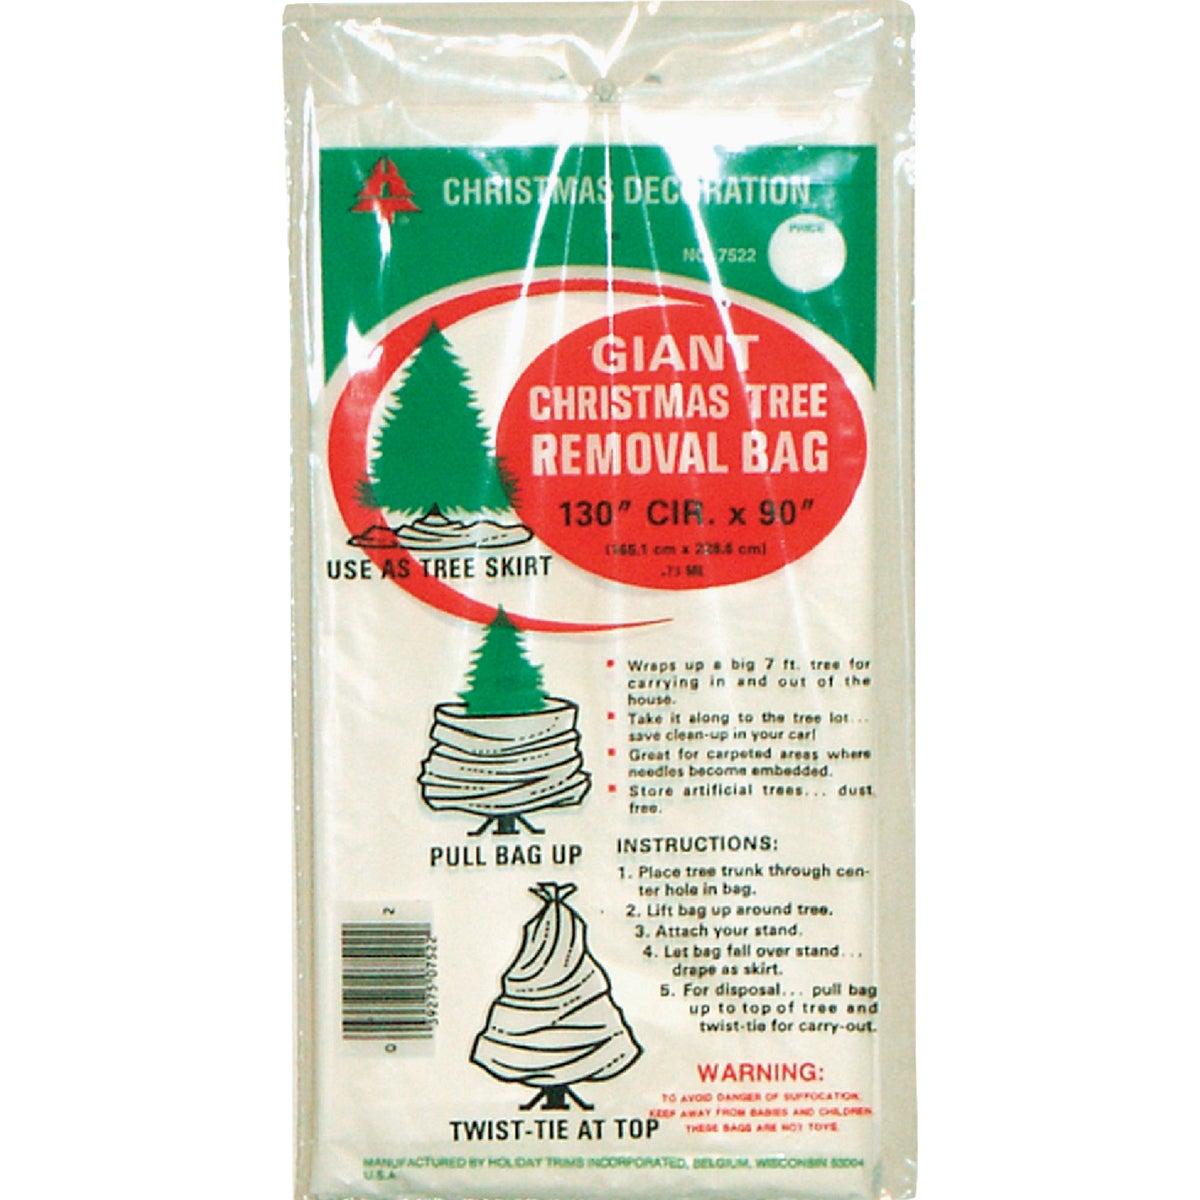 GIANT TREE REMOVAL BAG